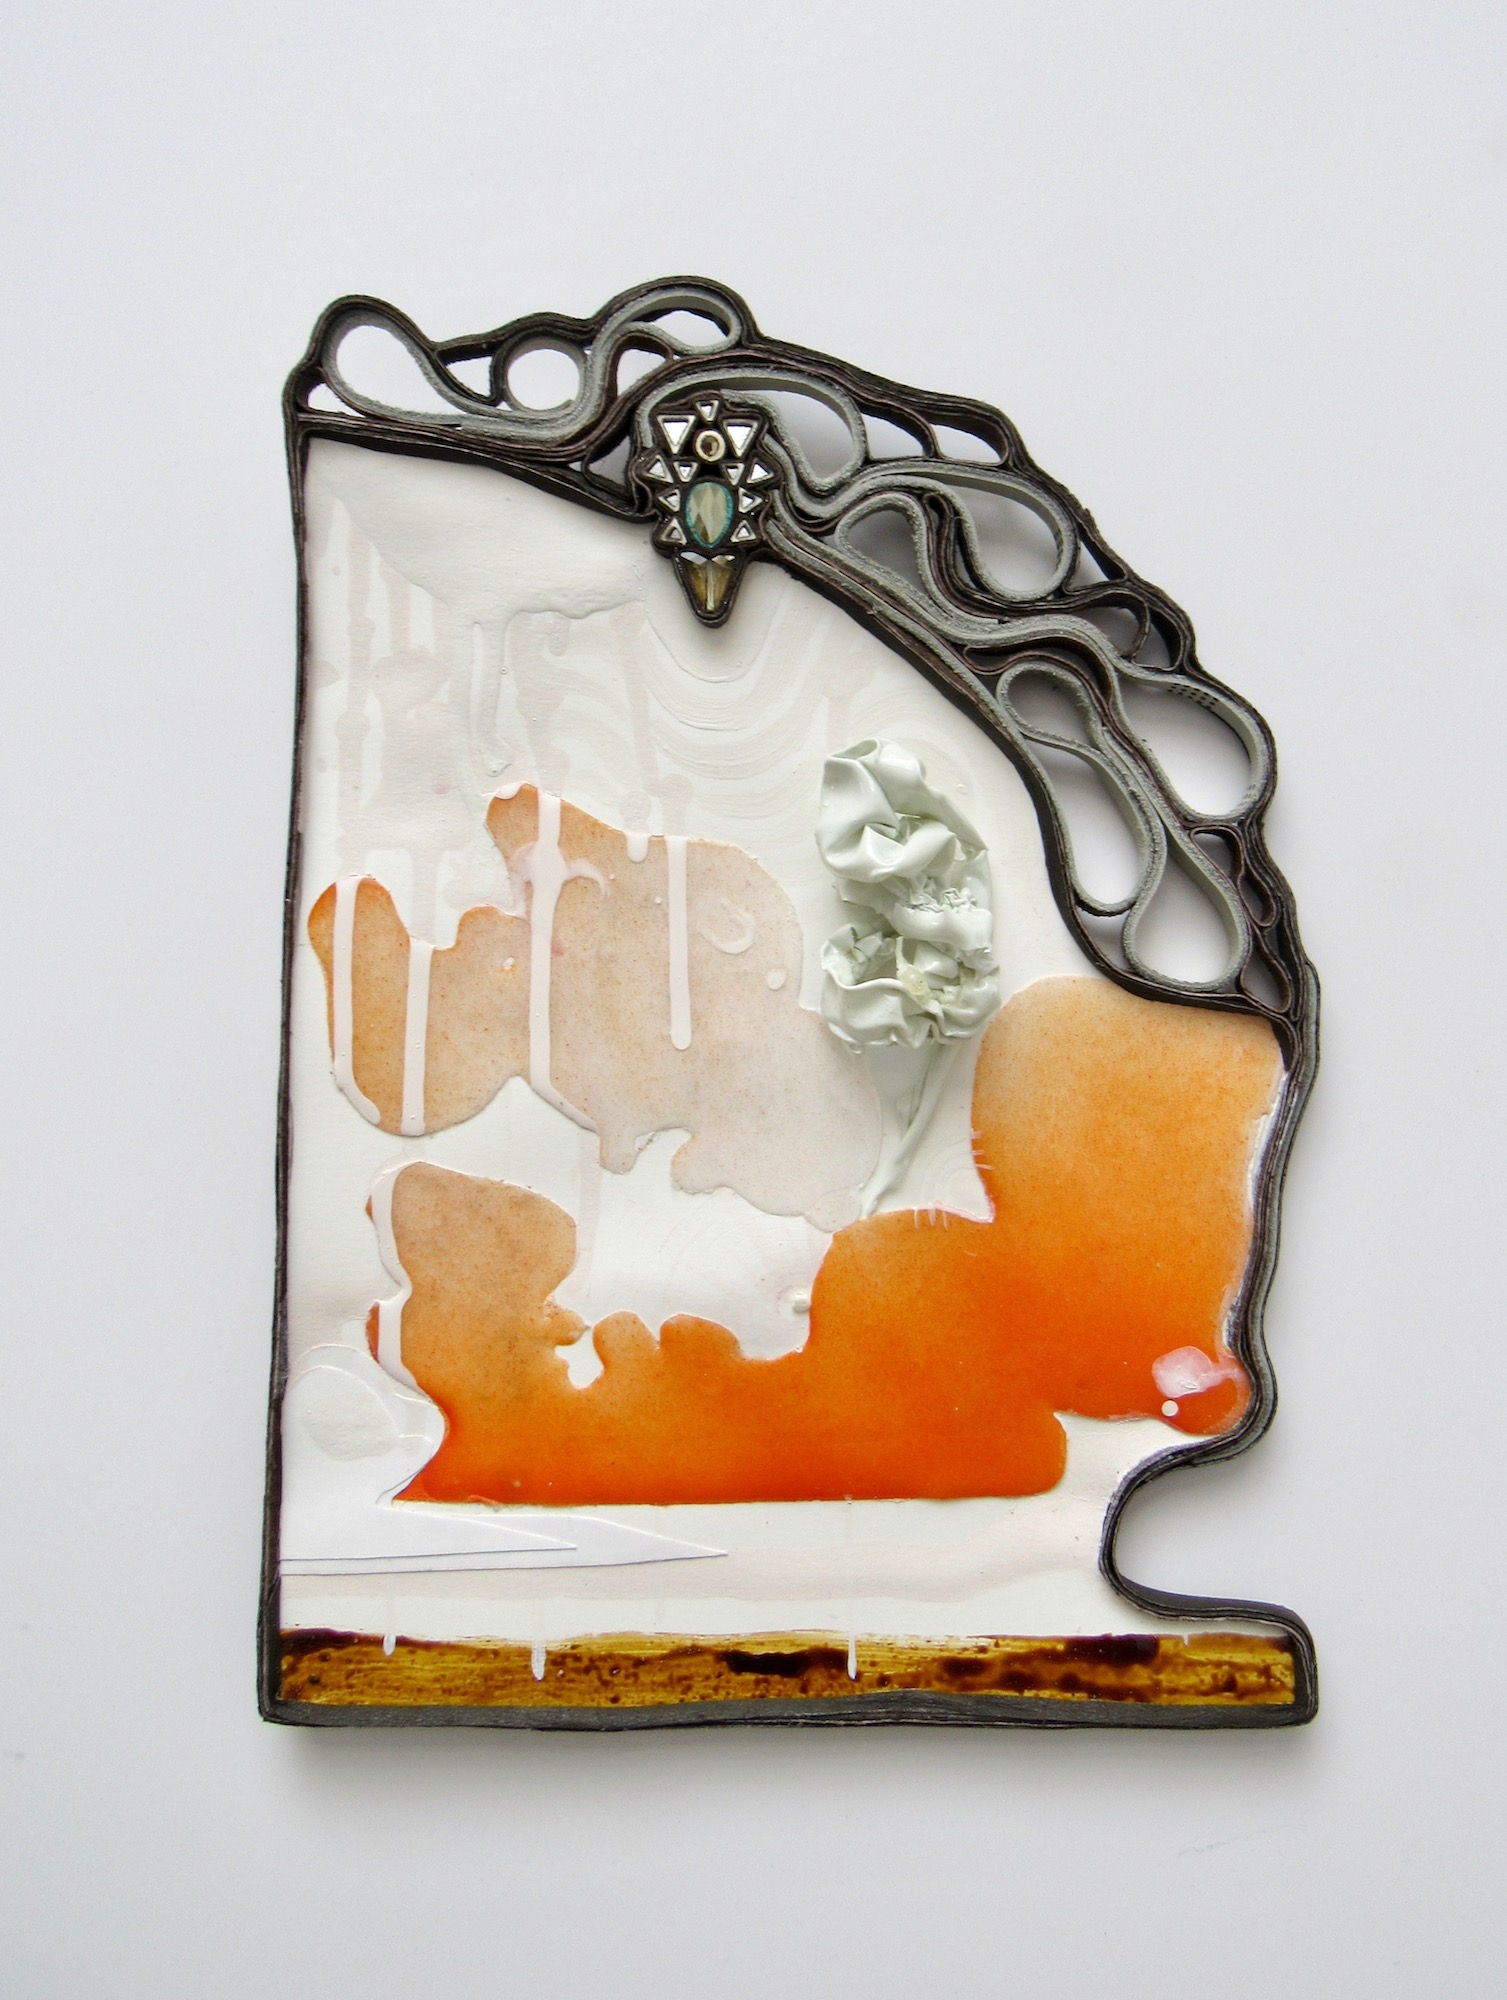 Past: Future Landscape 2  2019 Resin and acrylic on paper, leather, crystal, latex ballon, shellac. 11 x 8 x 2 inches